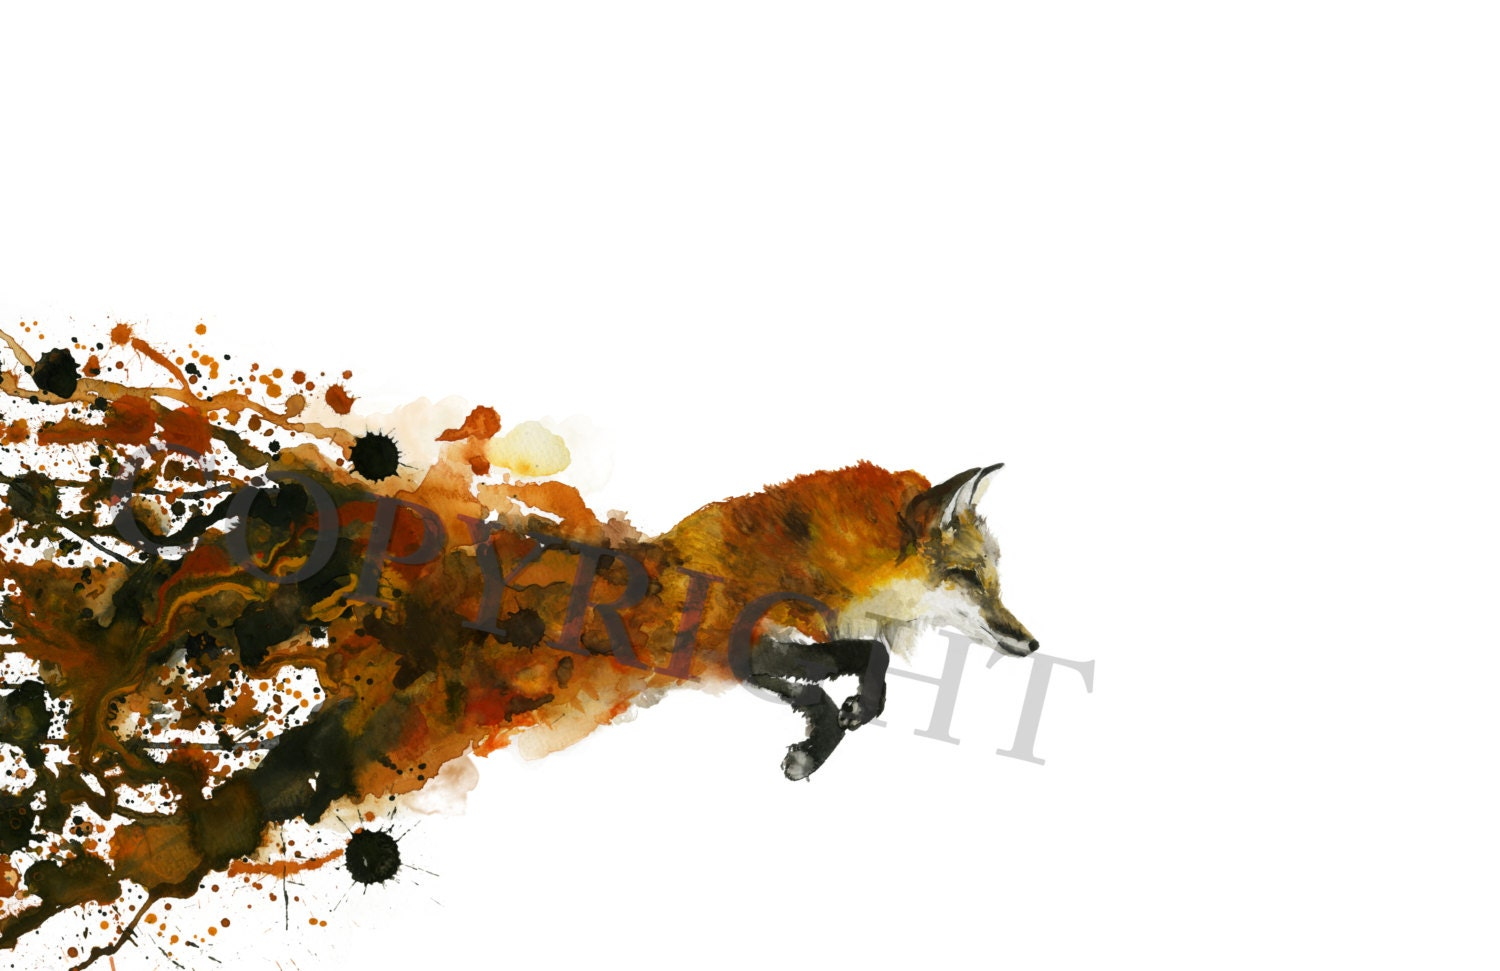 Fox Watercolor Print by TCsART on Etsy: https://www.etsy.com/listing/154693627/fox-watercolor-print